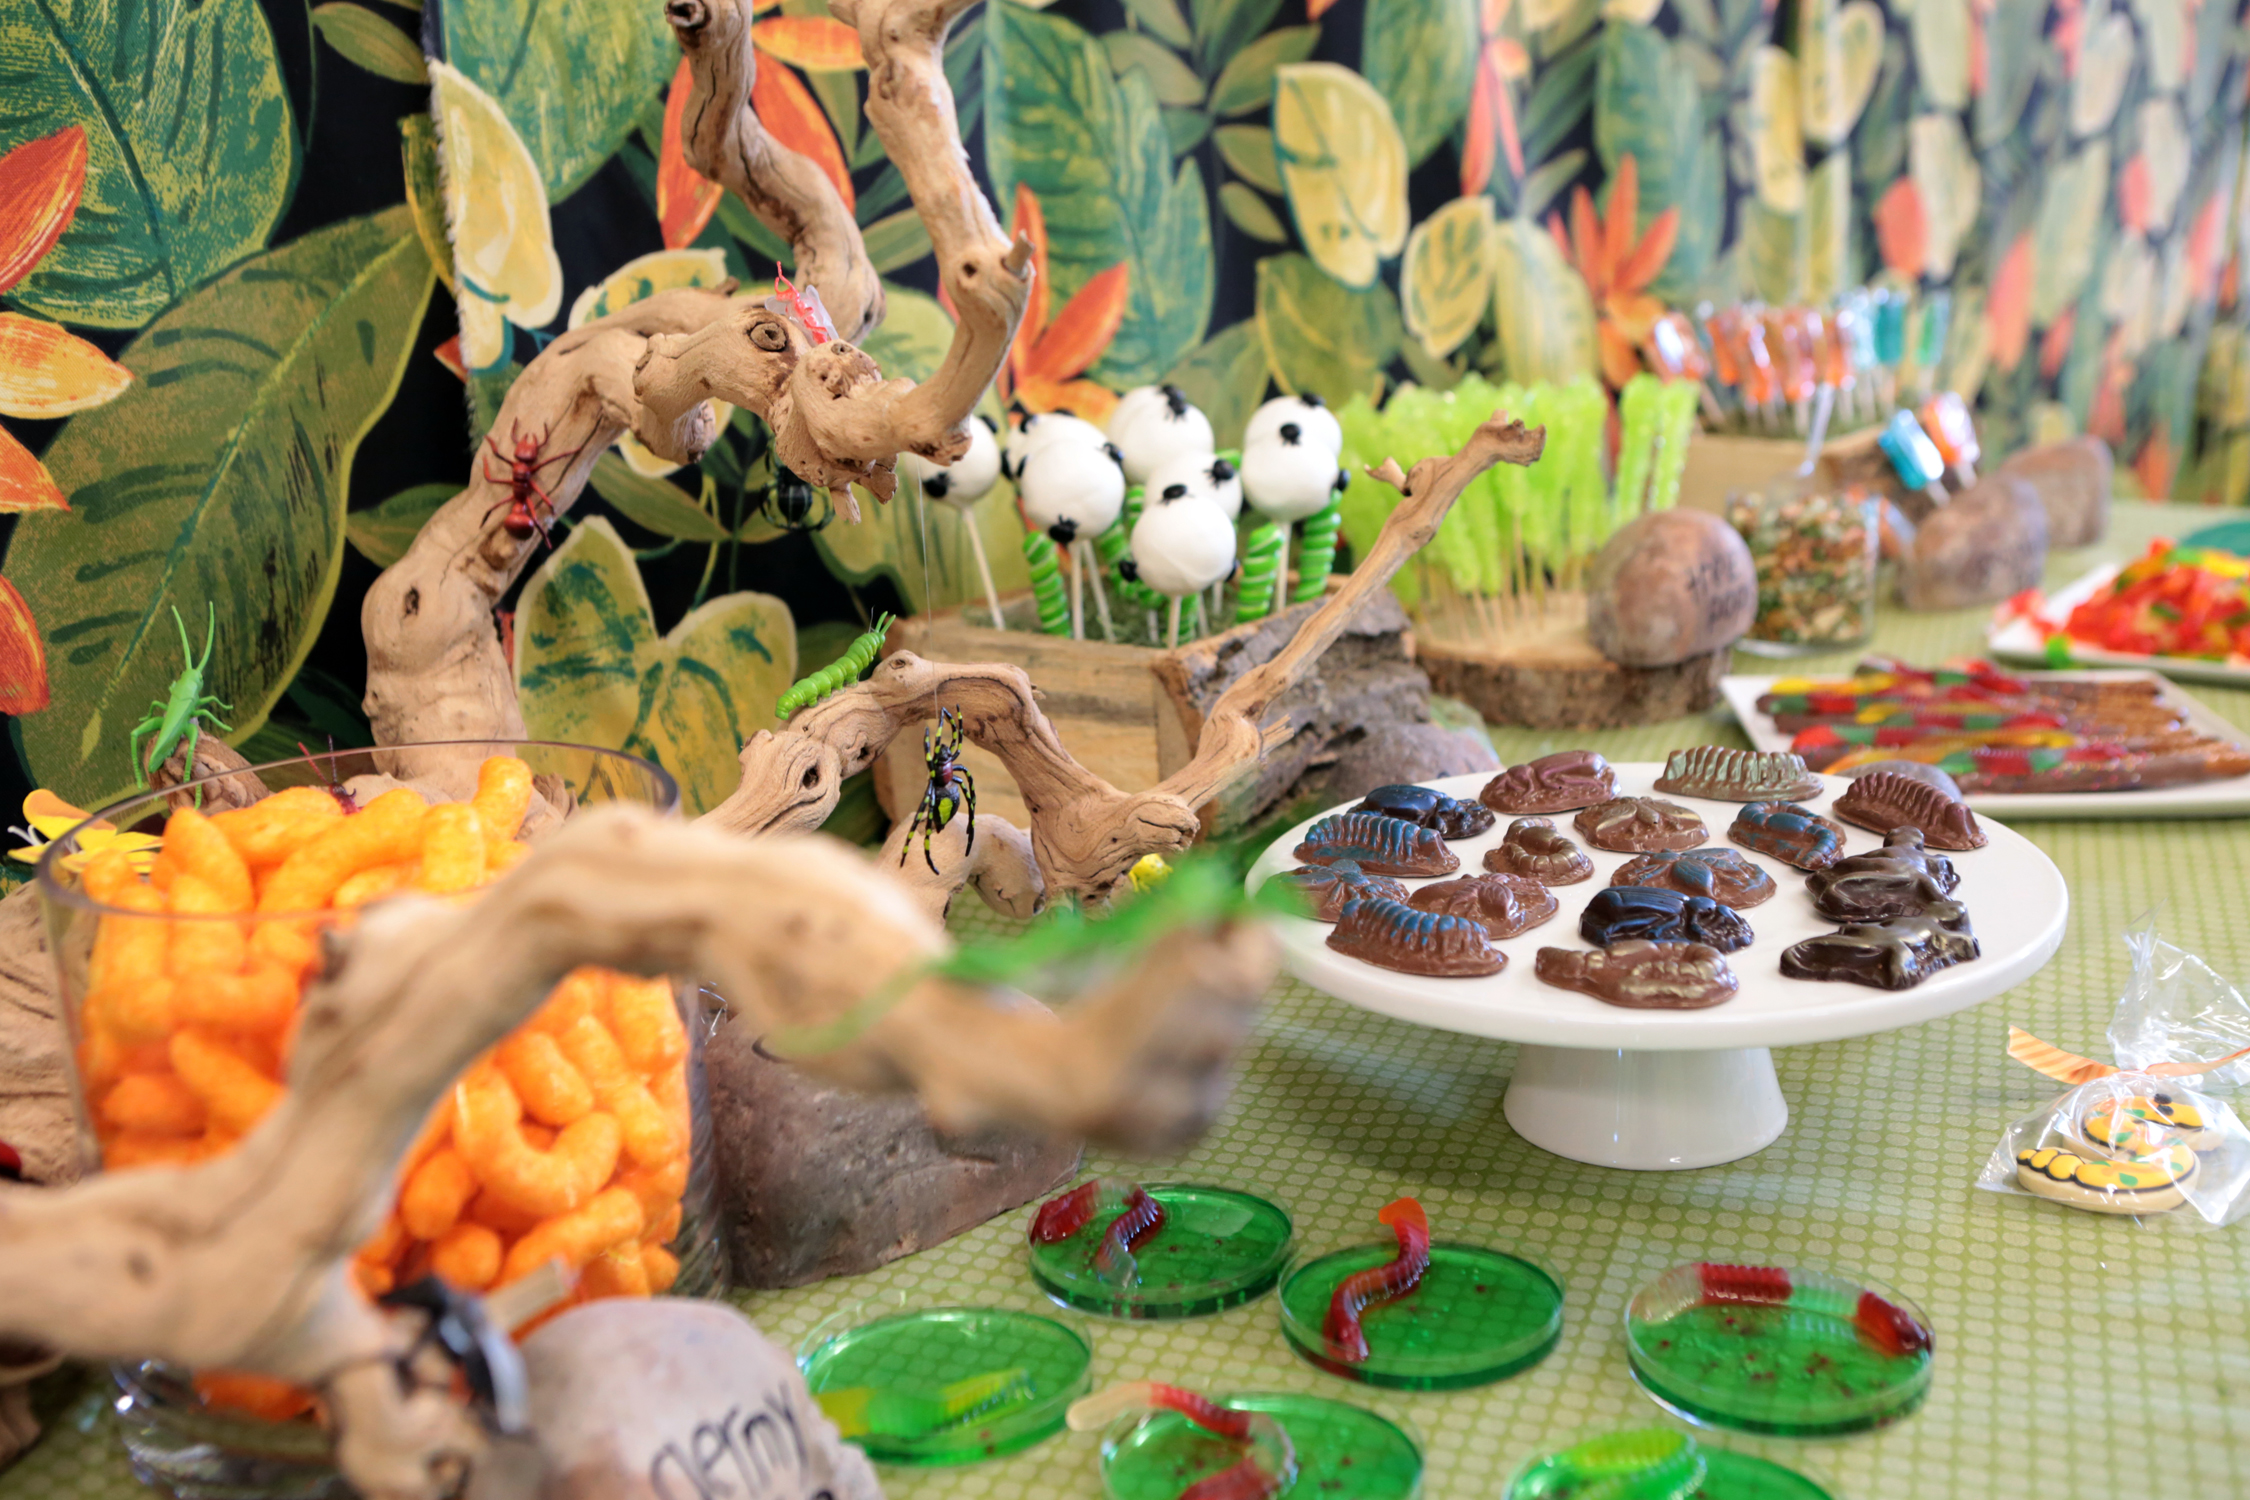 tarynco-events-bug-themed-kids-birthday-party-candy-snack-bar.jpg